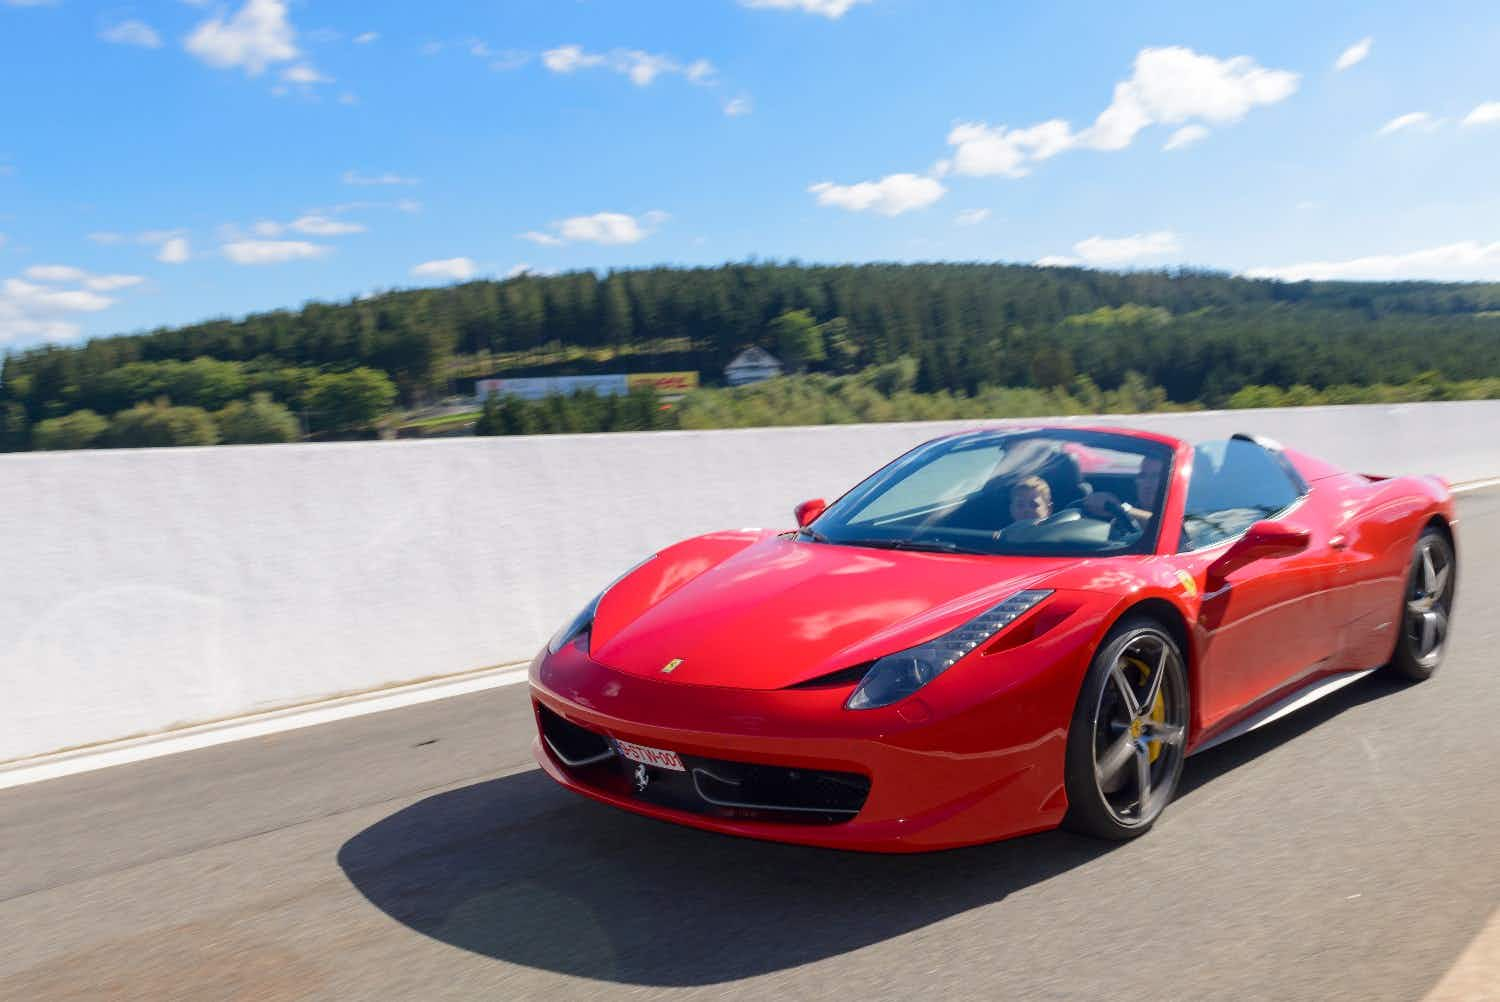 You can drive a Ferrari across northern Italy on this luxury tailor-made trip